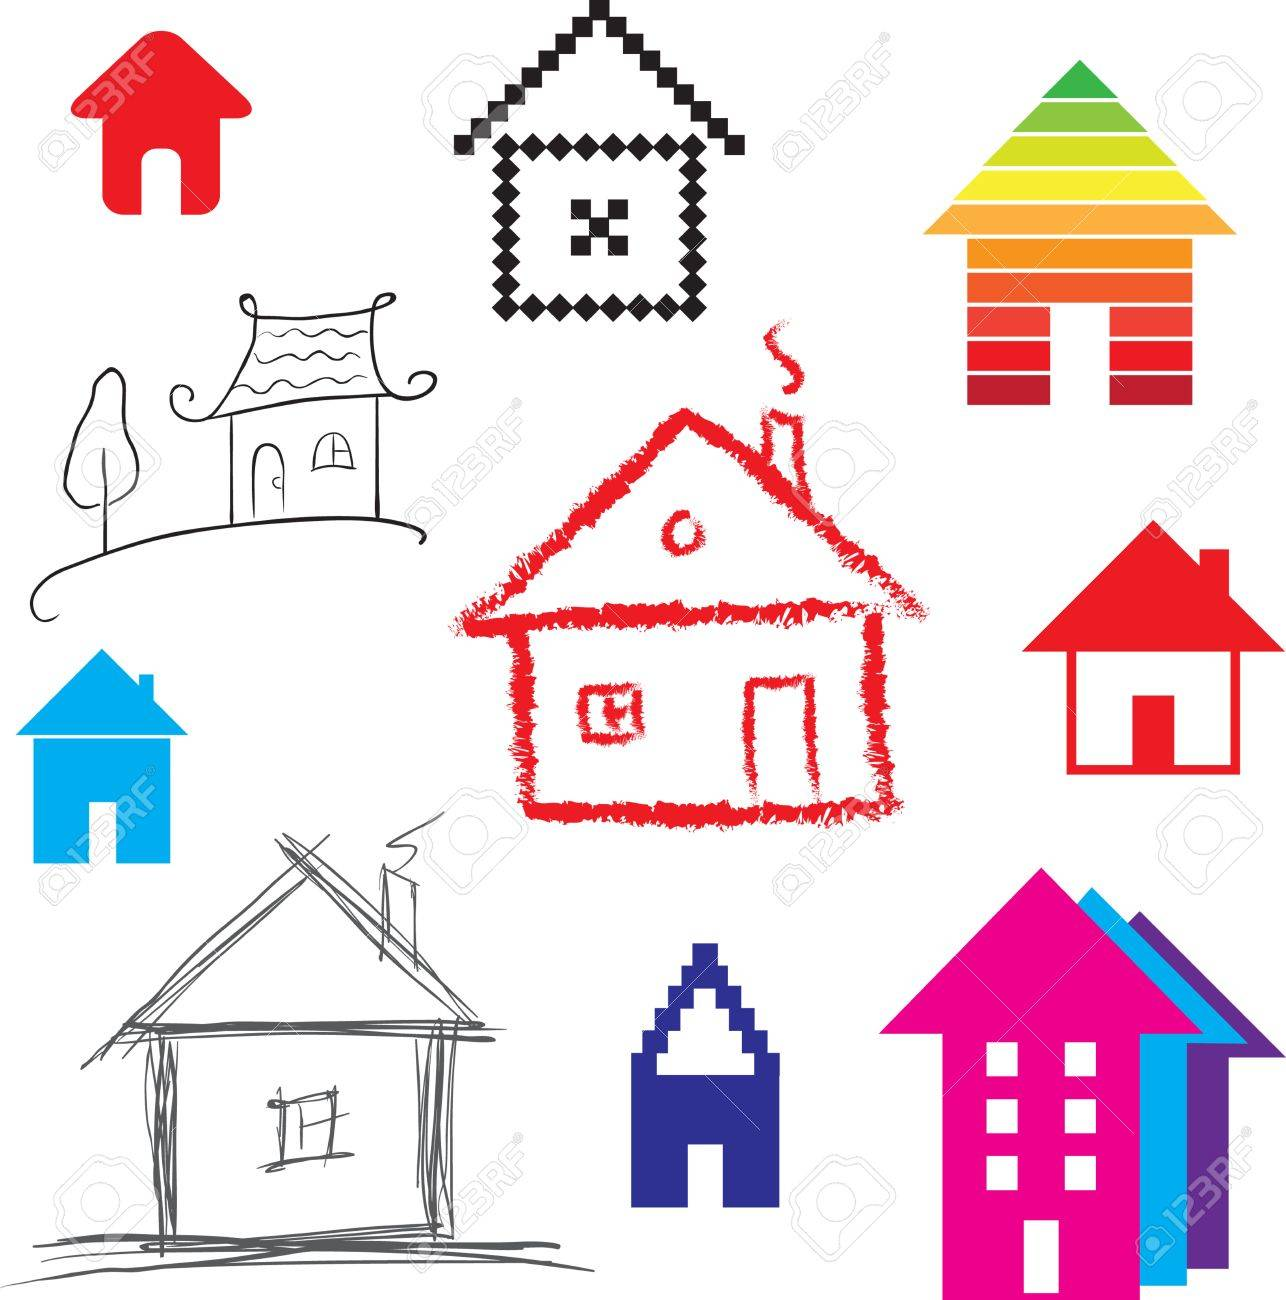 Simple stylized icon of houses  Abstract sign of real estate  illustration Stock Vector - 22285103